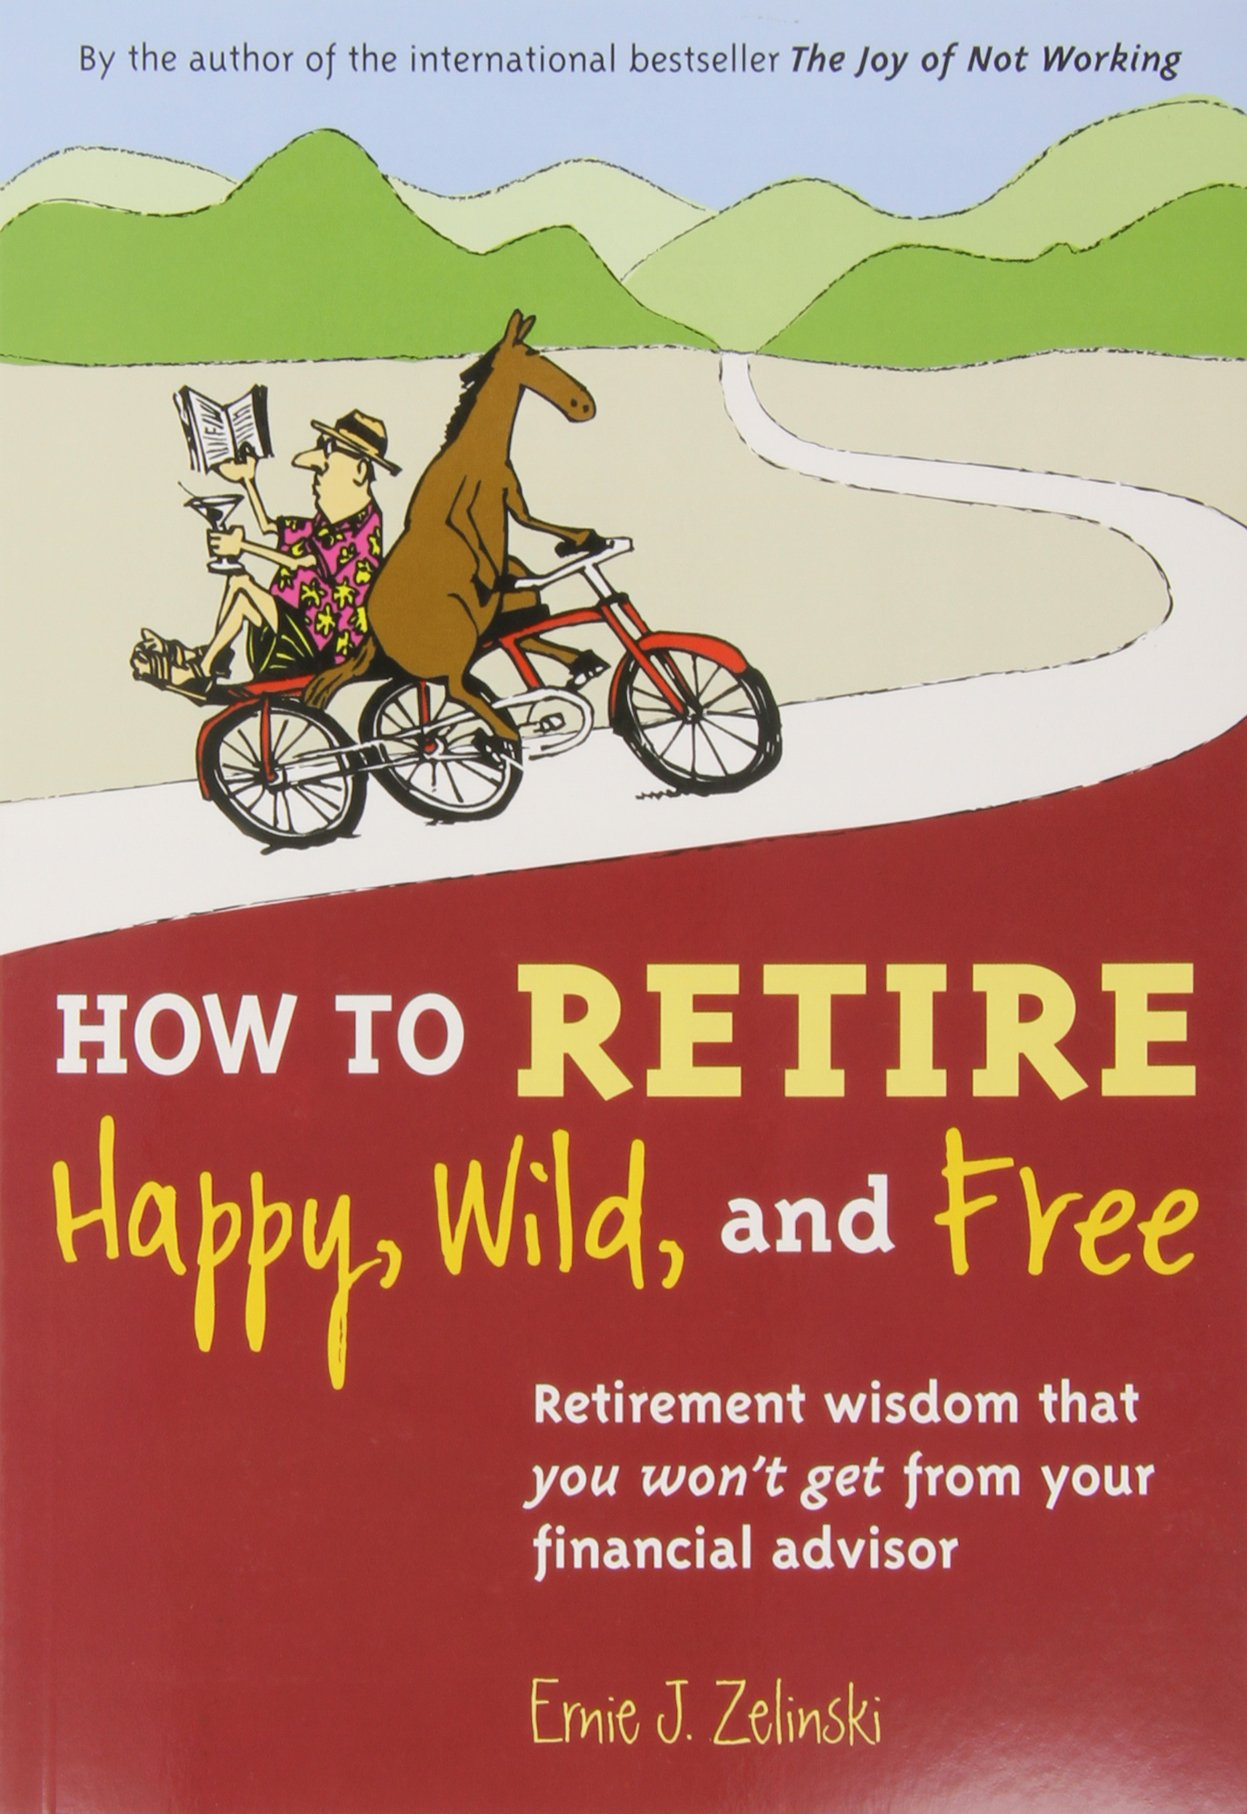 How To Retire Happy, Wild, And Free: Retirement Wisdom That You Won't Get  From Your Financial Advisor: Ernie J Zelinski: 9780969419495: Amazon:  Books